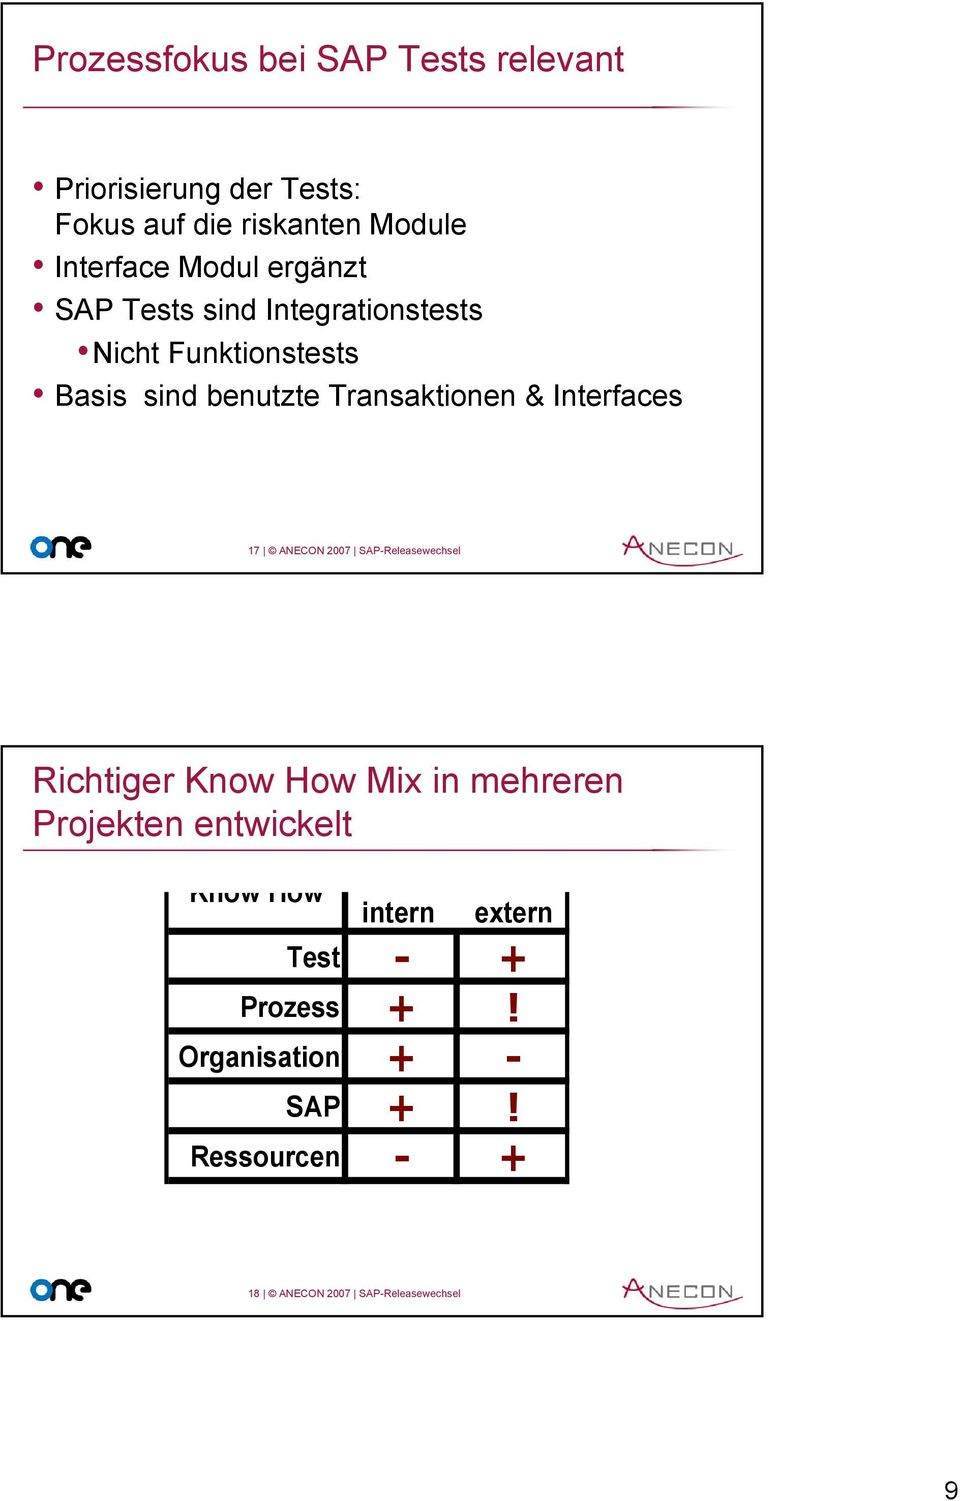 Interfaces 17 ANECON 2007 SAP-Releasewechsel Richtiger Know How Mix in mehreren Projekten entwickelt Know